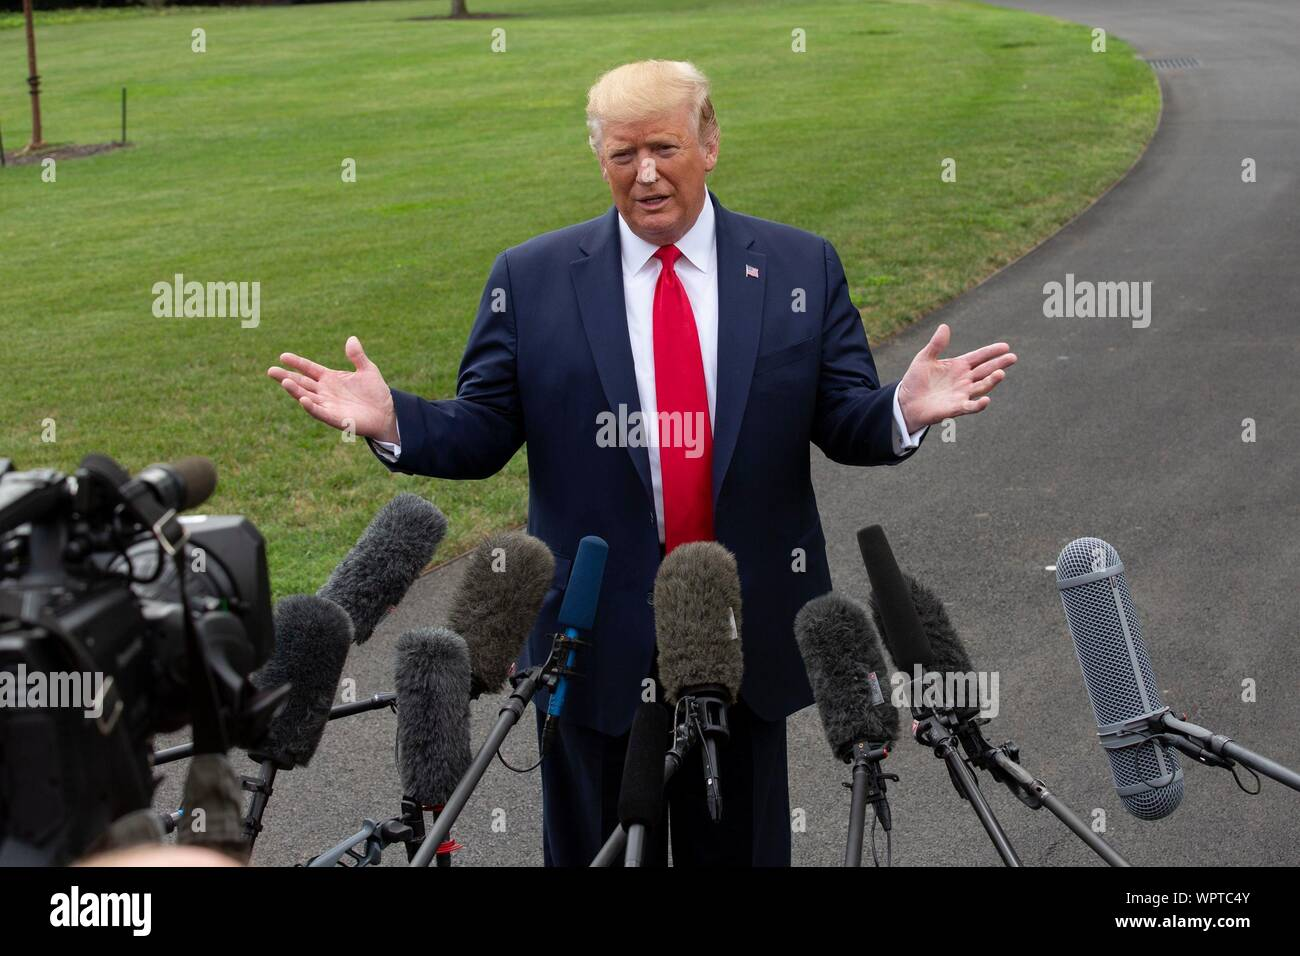 Washington, United States Of America. 09th Sep, 2019. United States President Donald J. Trump speaks to the press as he departs the White House in Washington, DC, U.S. for a rally in North Carolina on September 9, 2019. Credit: Stefani Reynolds/CNP | usage worldwide Credit: dpa/Alamy Live News Stock Photo